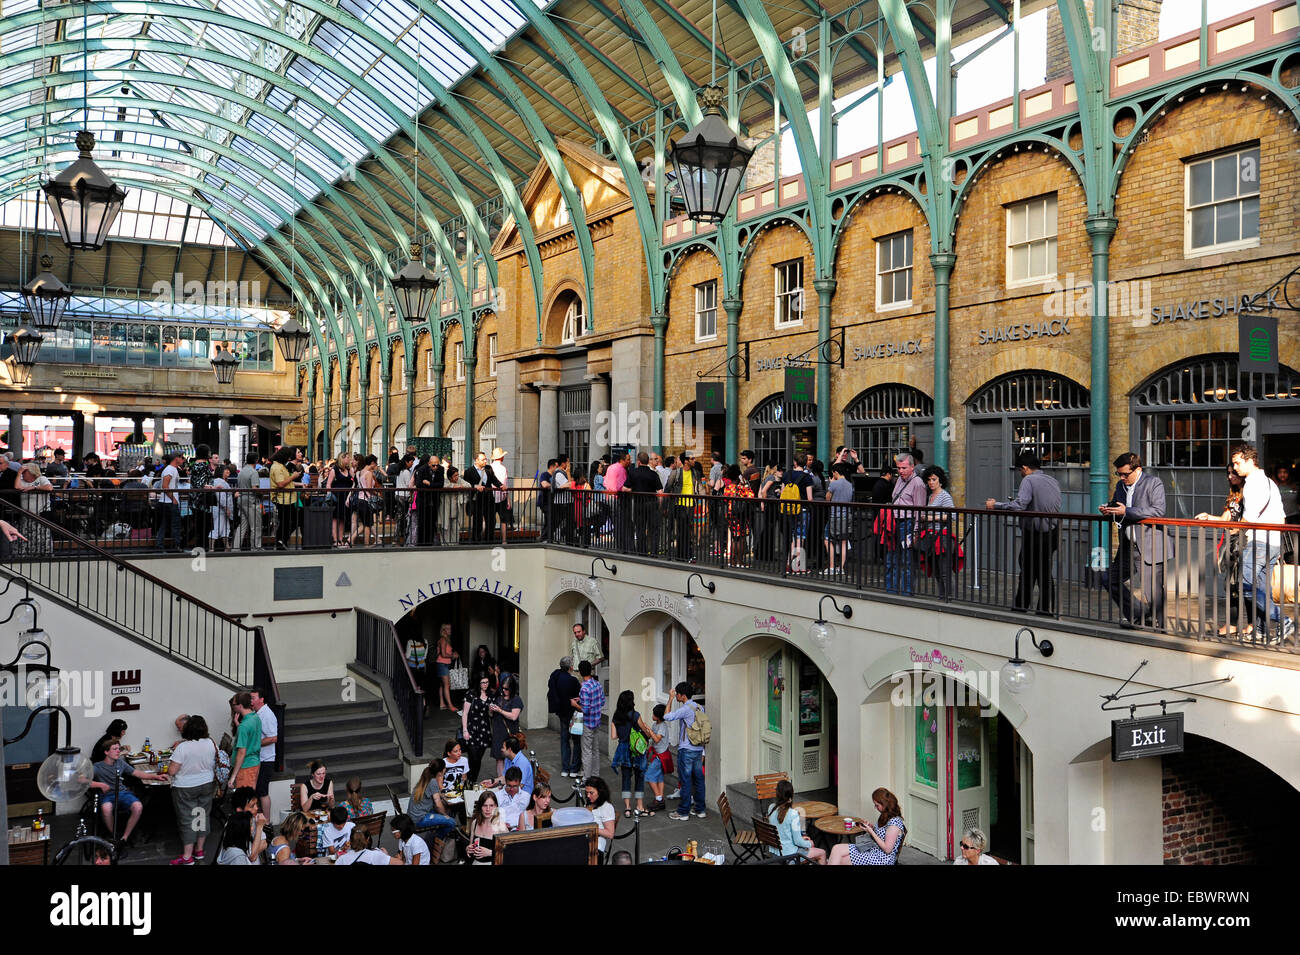 Inspiring Interior Covent Garden Market London Stock Photos  Interior  With Marvelous People Inside Covent Garden Central Market Covent Garden West End  London England With Enchanting Lee Garden Restaurant Toronto Also  Kensington Palace Gardens In Addition Garden Fire Pit Ideas And Cheap Garden Slabs For Sale As Well As London Map Covent Garden Additionally Jj Gardening From Alamycom With   Marvelous Interior Covent Garden Market London Stock Photos  Interior  With Enchanting People Inside Covent Garden Central Market Covent Garden West End  London England And Inspiring Lee Garden Restaurant Toronto Also  Kensington Palace Gardens In Addition Garden Fire Pit Ideas From Alamycom